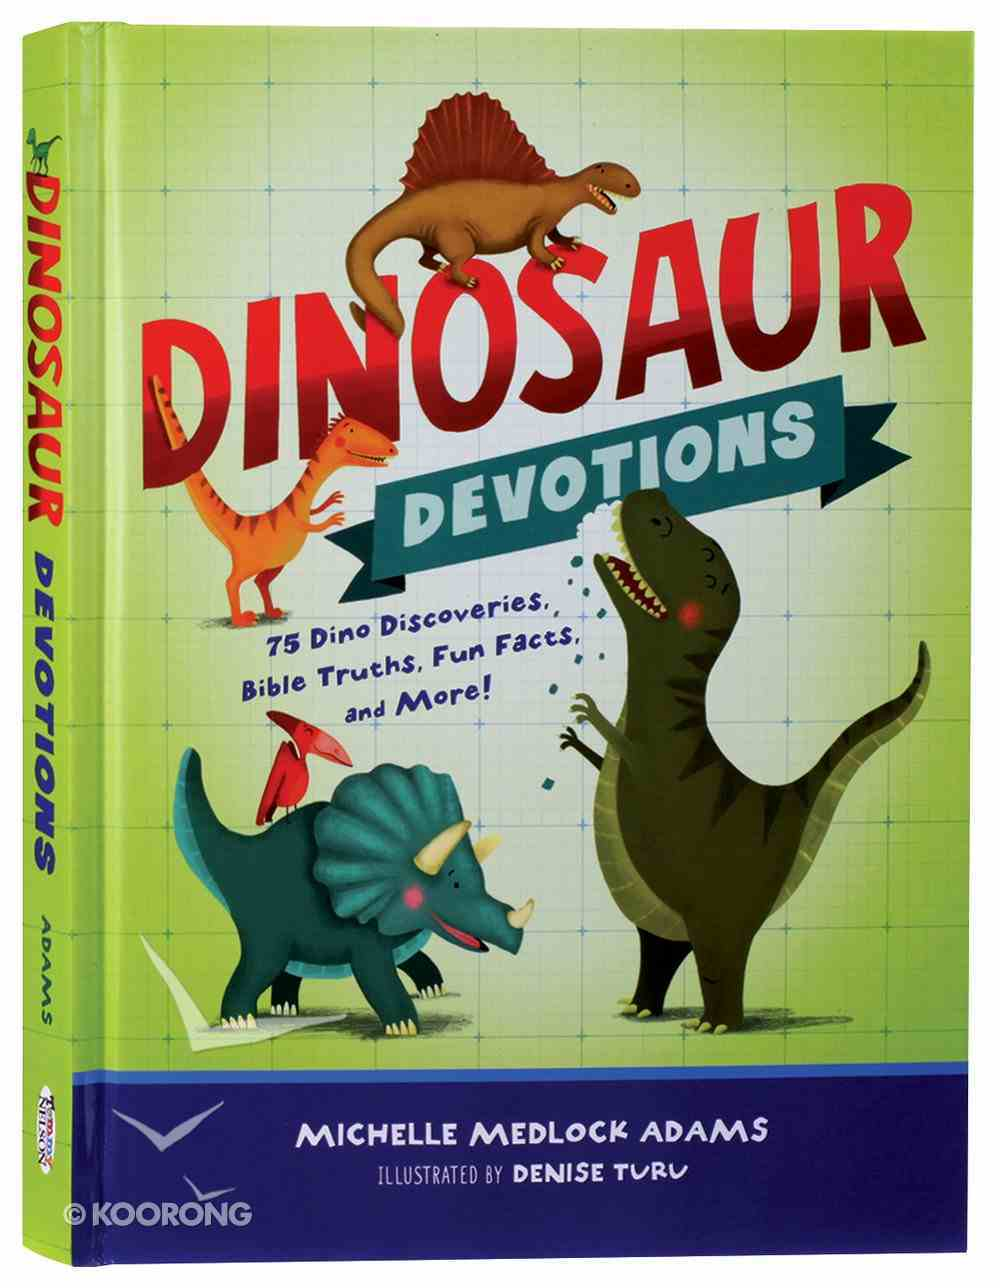 Dinosaur Devotions: 75 Dino Discoveries, Bible Truths, Fun Facts, and More! Hardback